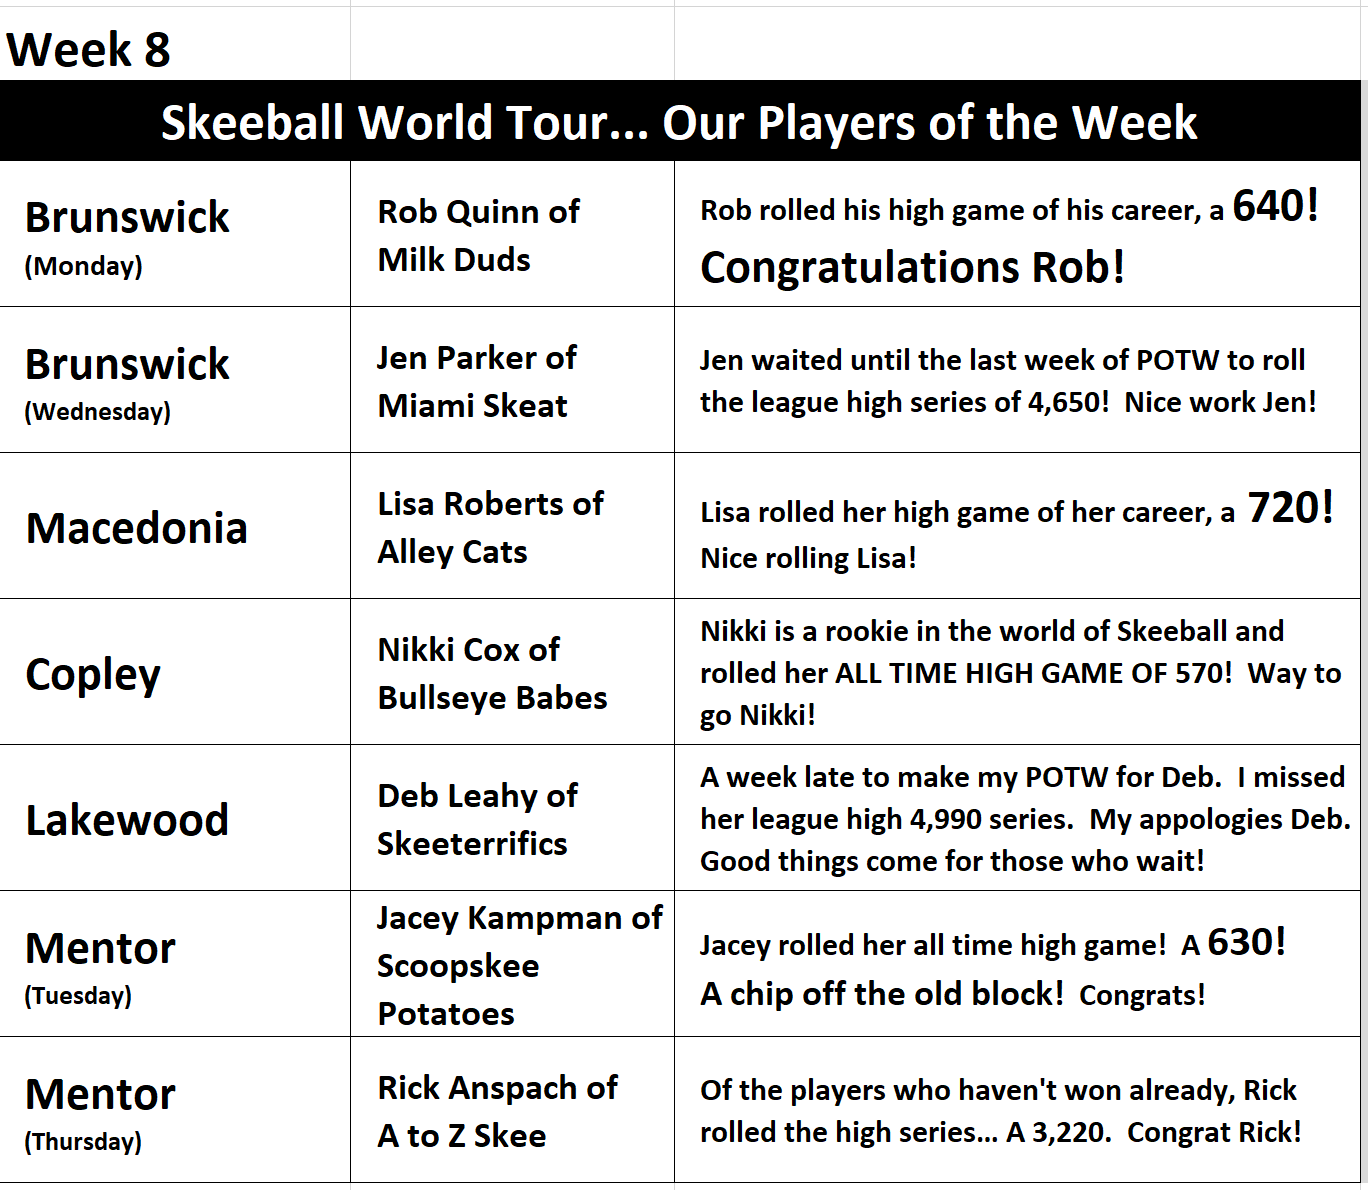 Week 8 Players of the Week